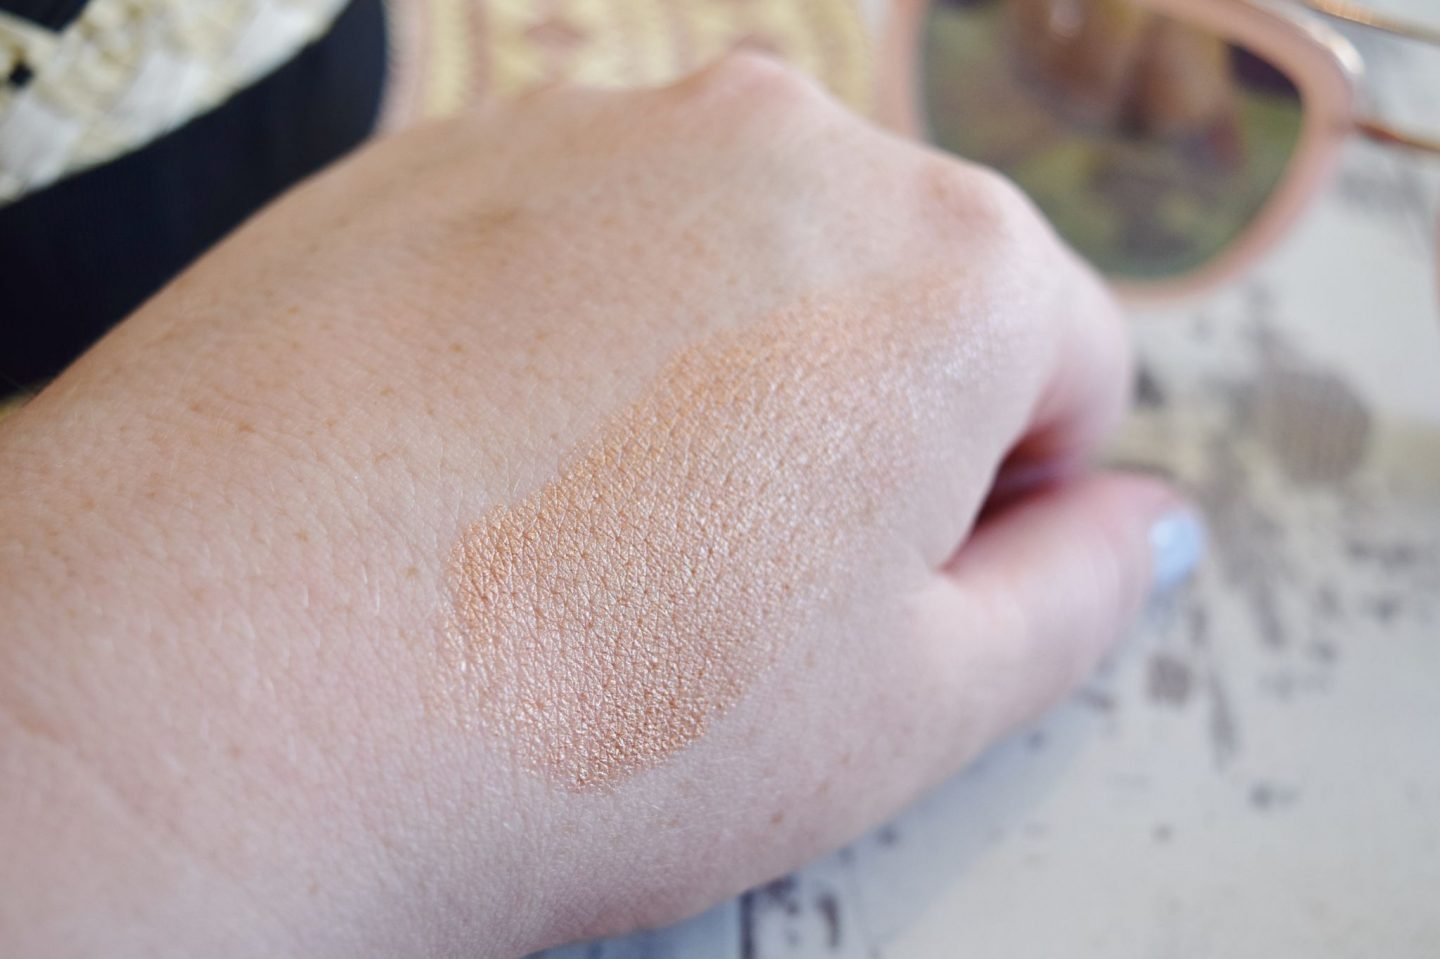 Bobbi Brown Glow Stick in Sunkissed swatch